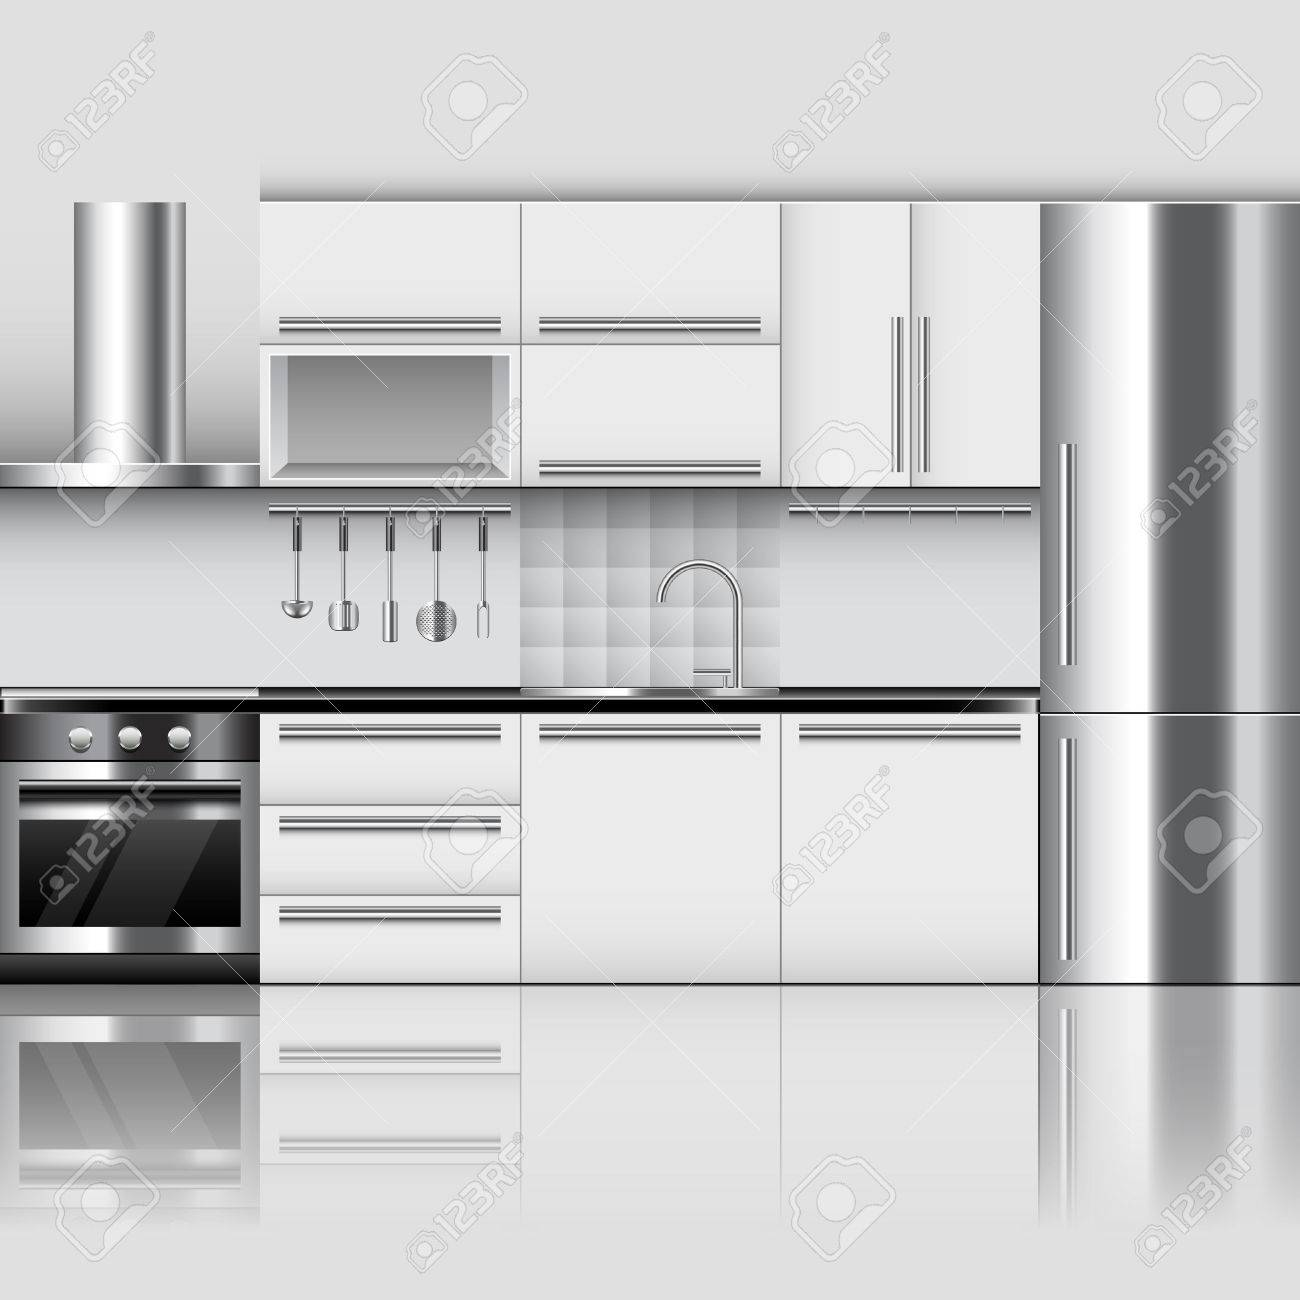 Modern Kitchen Background modern kitchen interior photo realistic vector background royalty